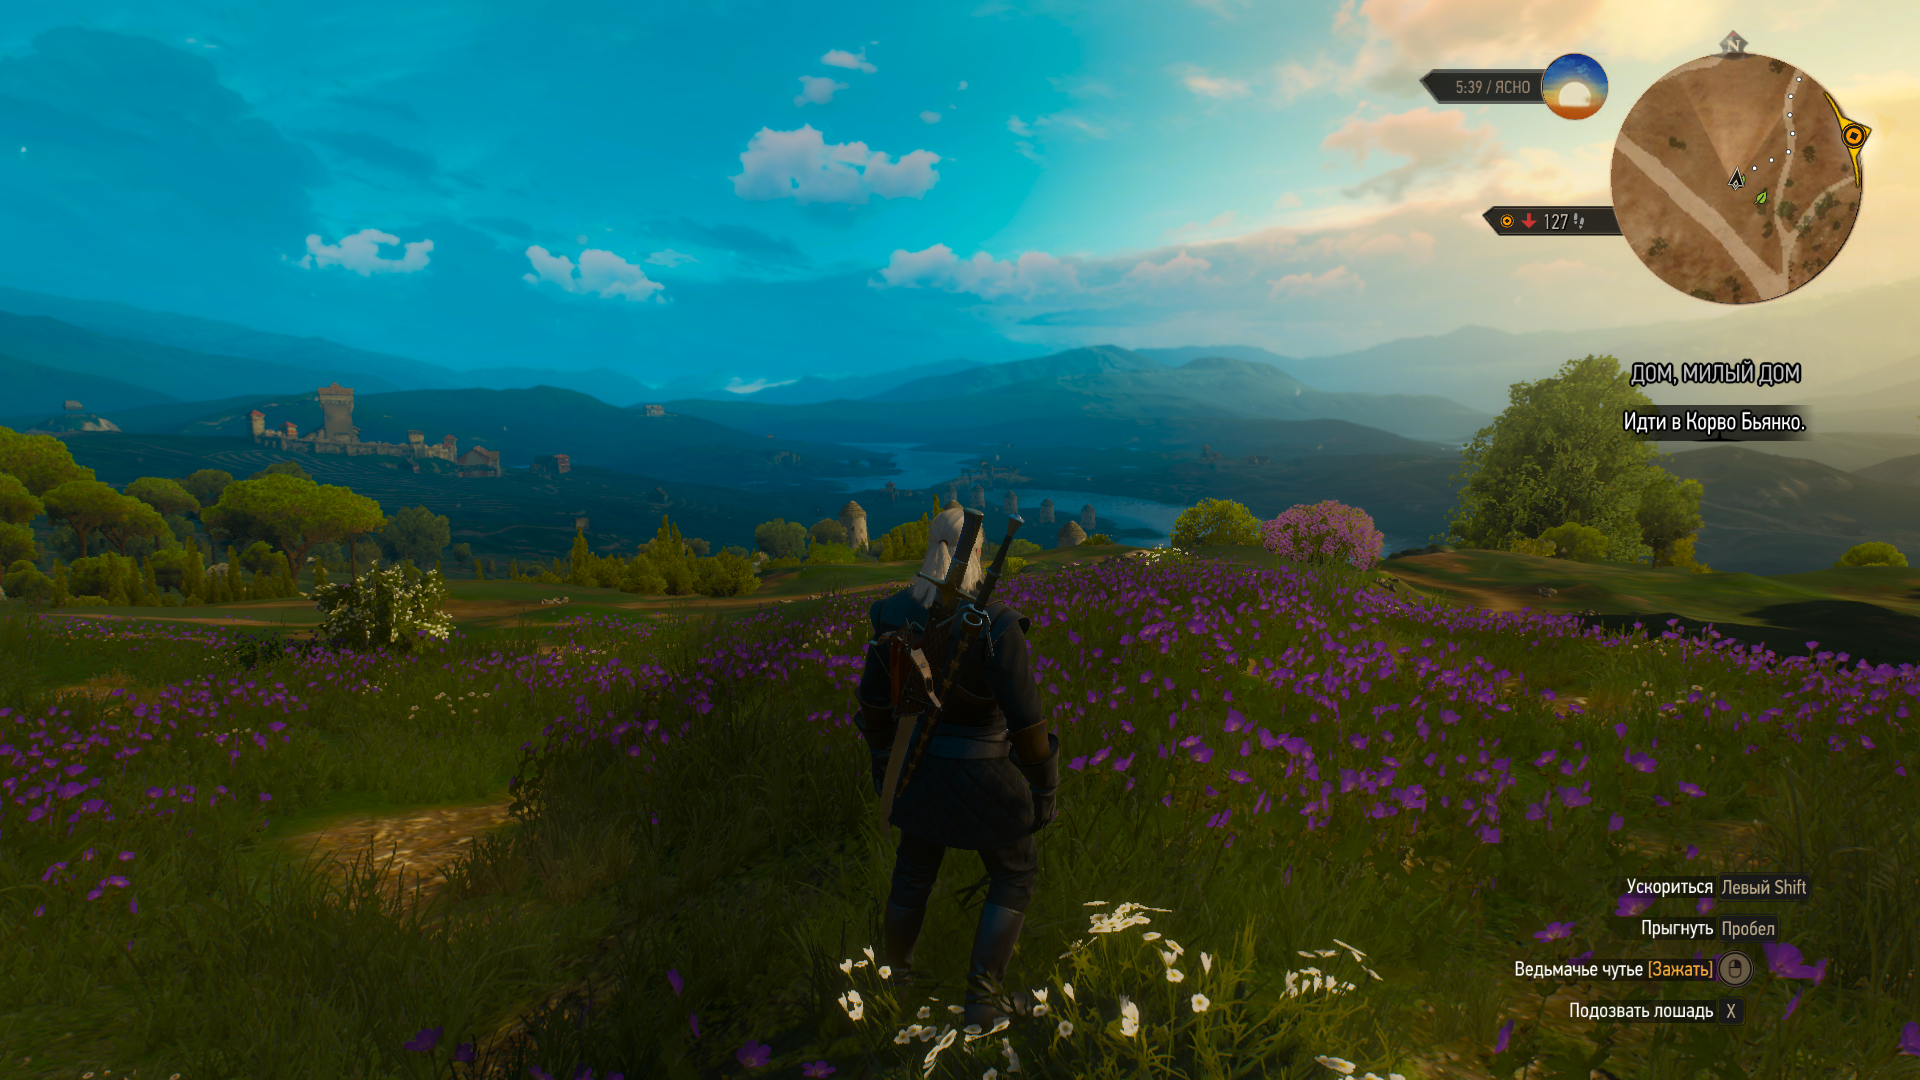 The Witcher 3 29.03.2020 15_59_29.png